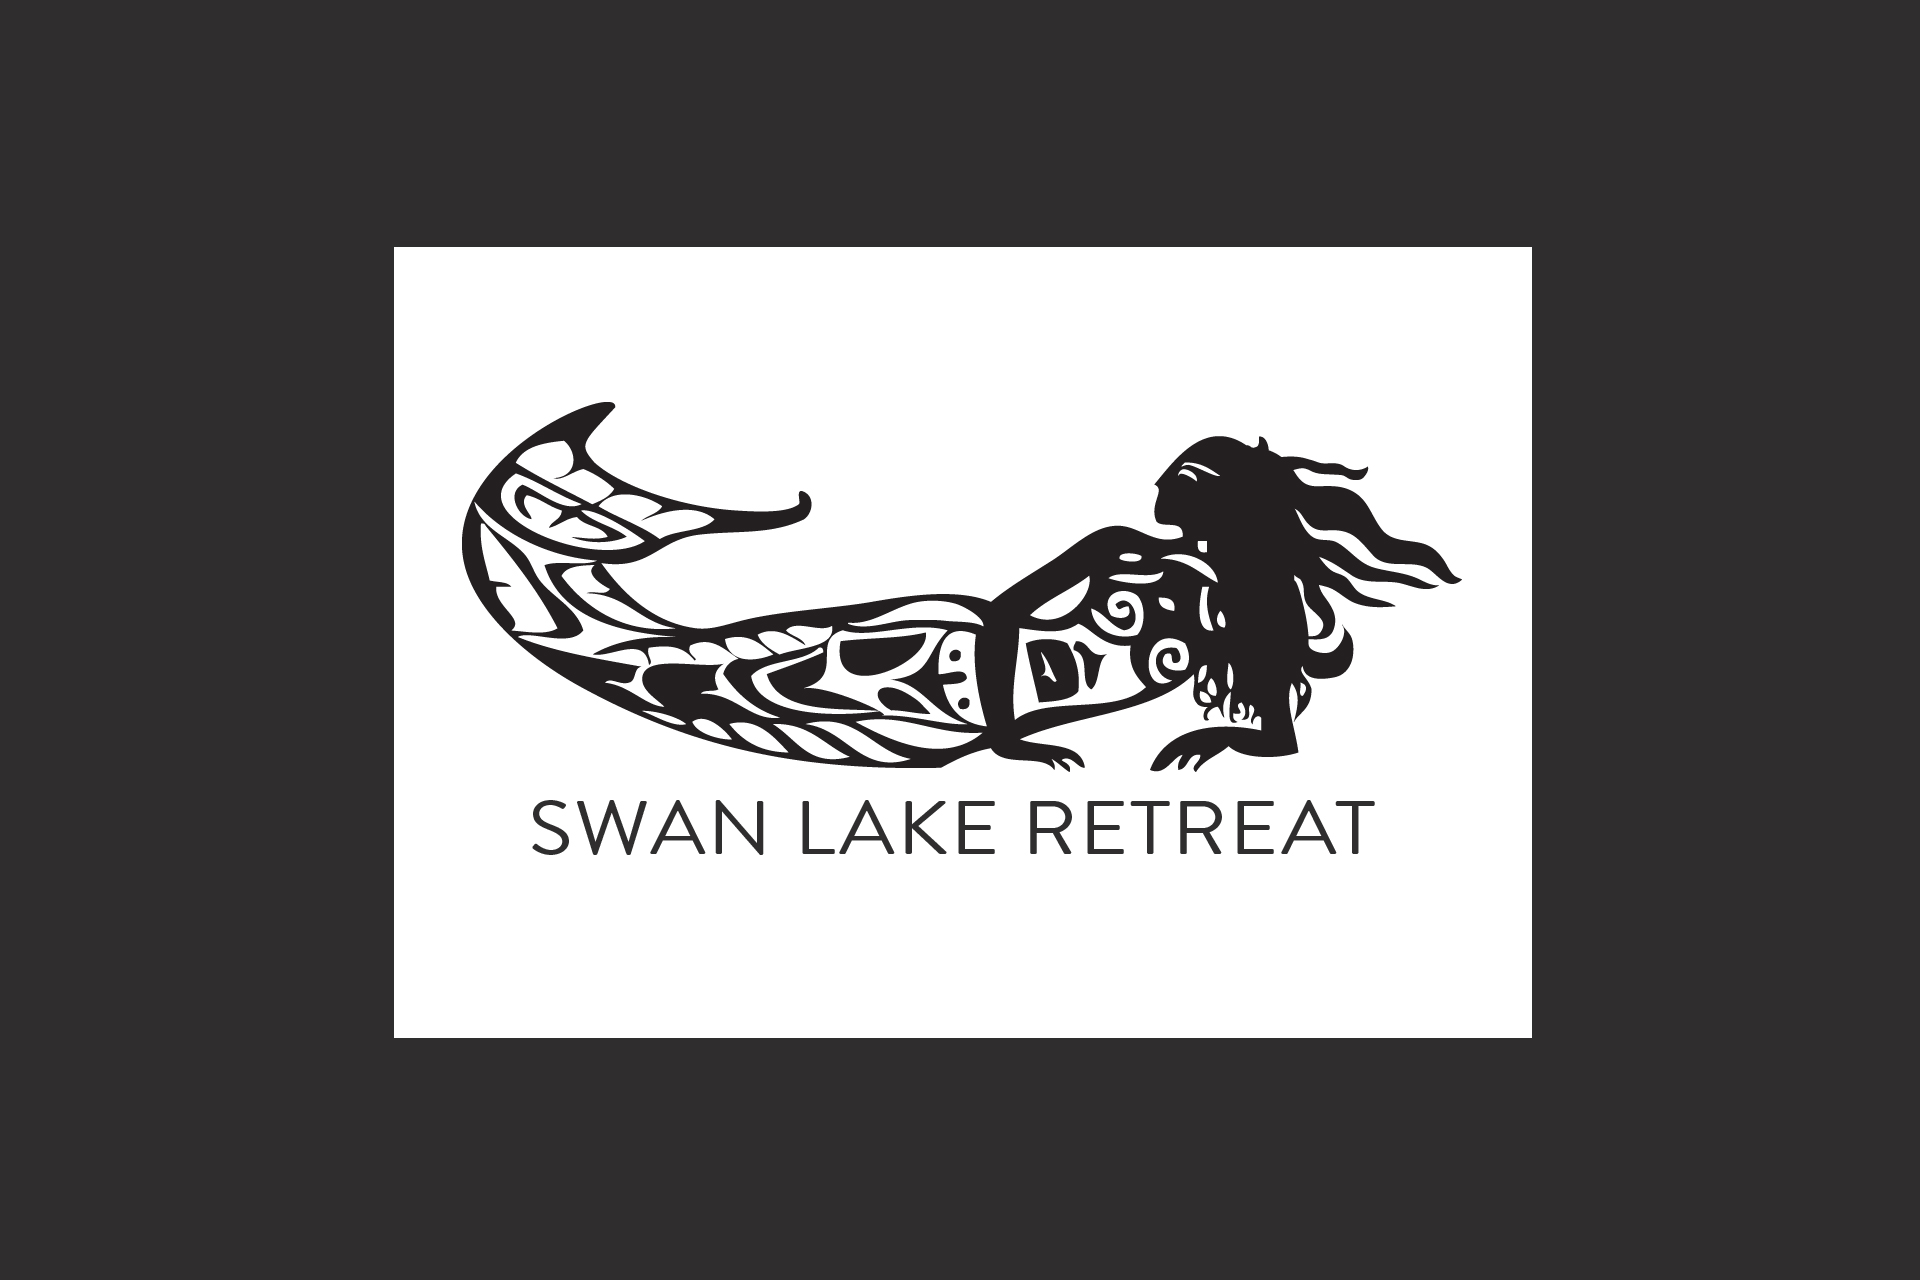 Swan Lake Retreat logo illustration